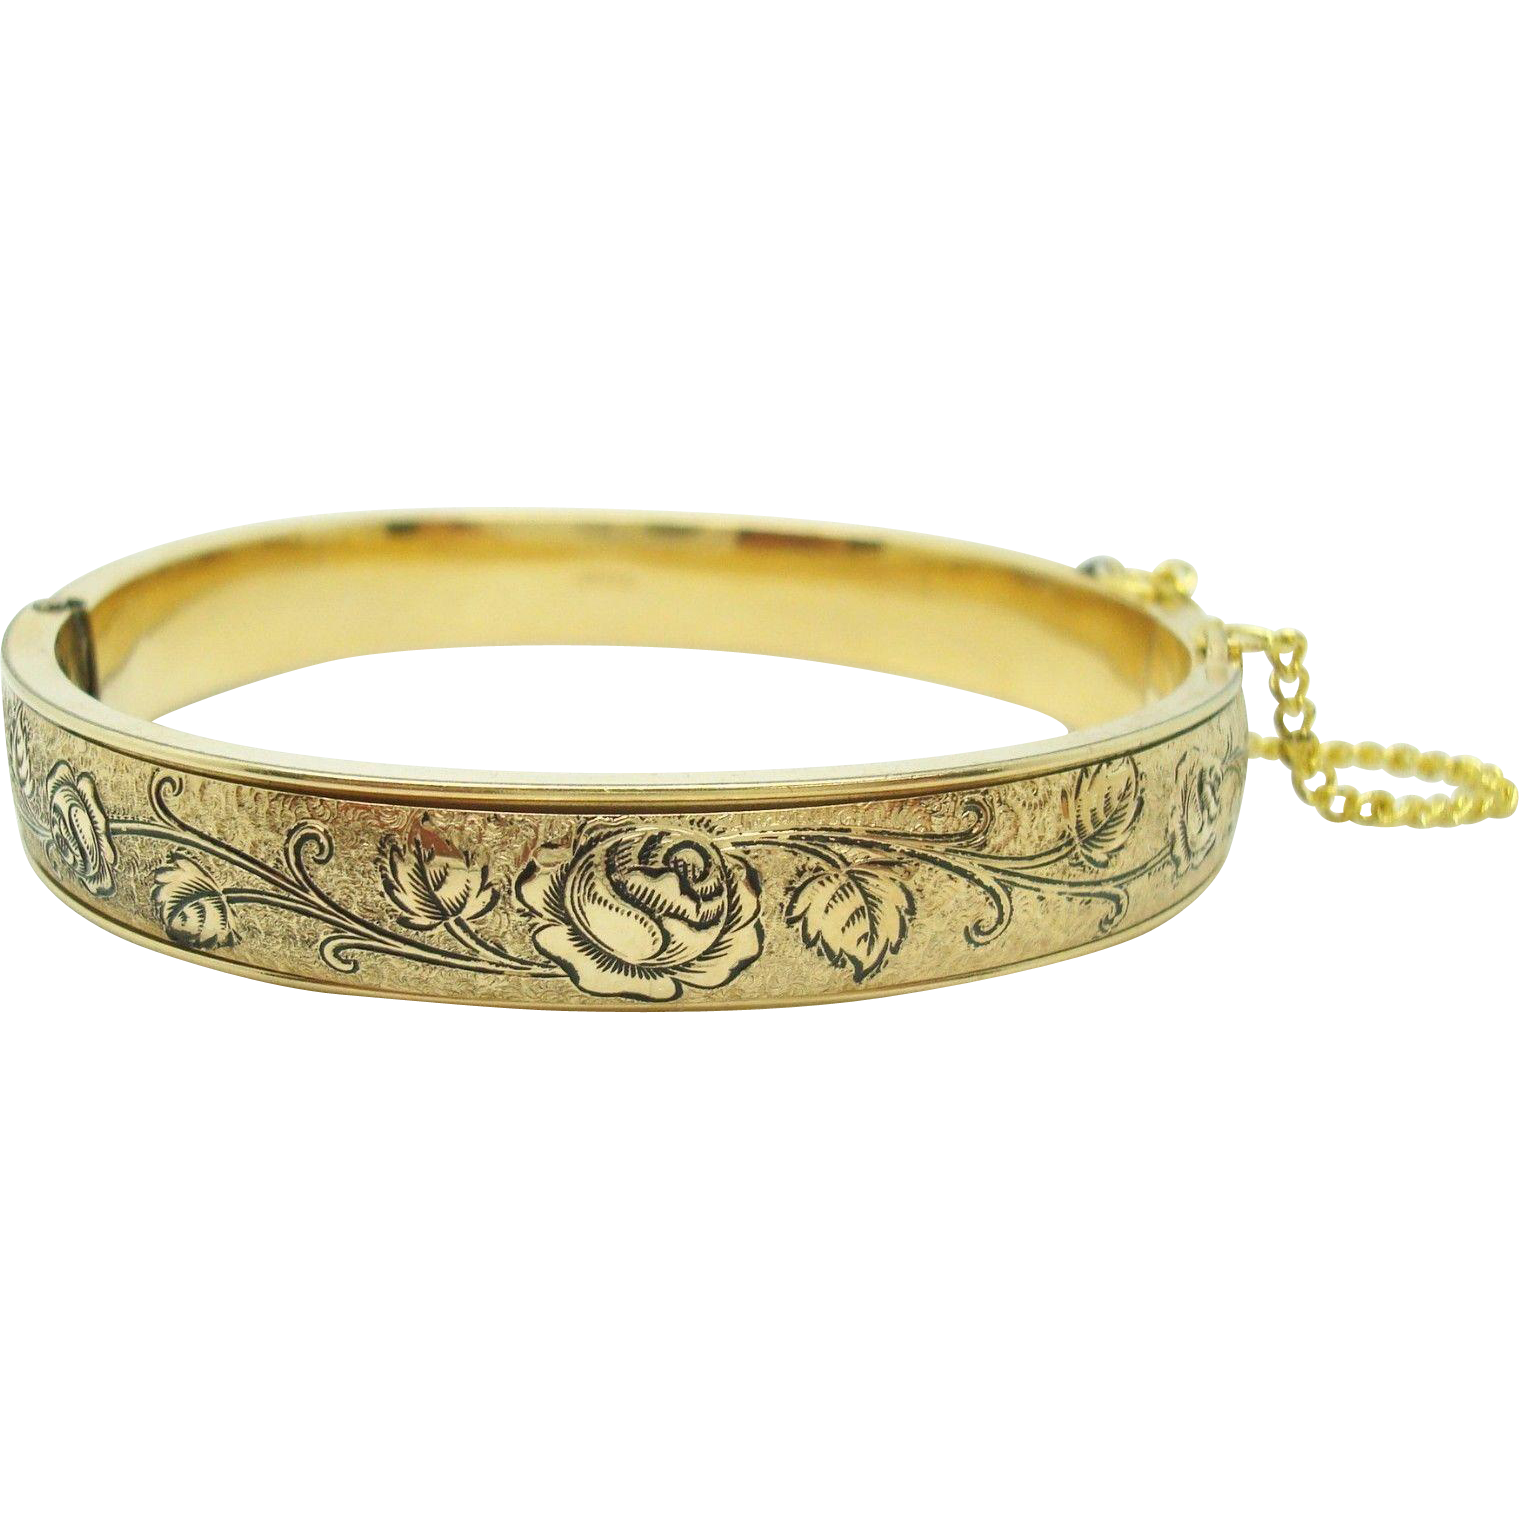 Yellow Gold Filled Bangle Bracelet with Enamel Flower